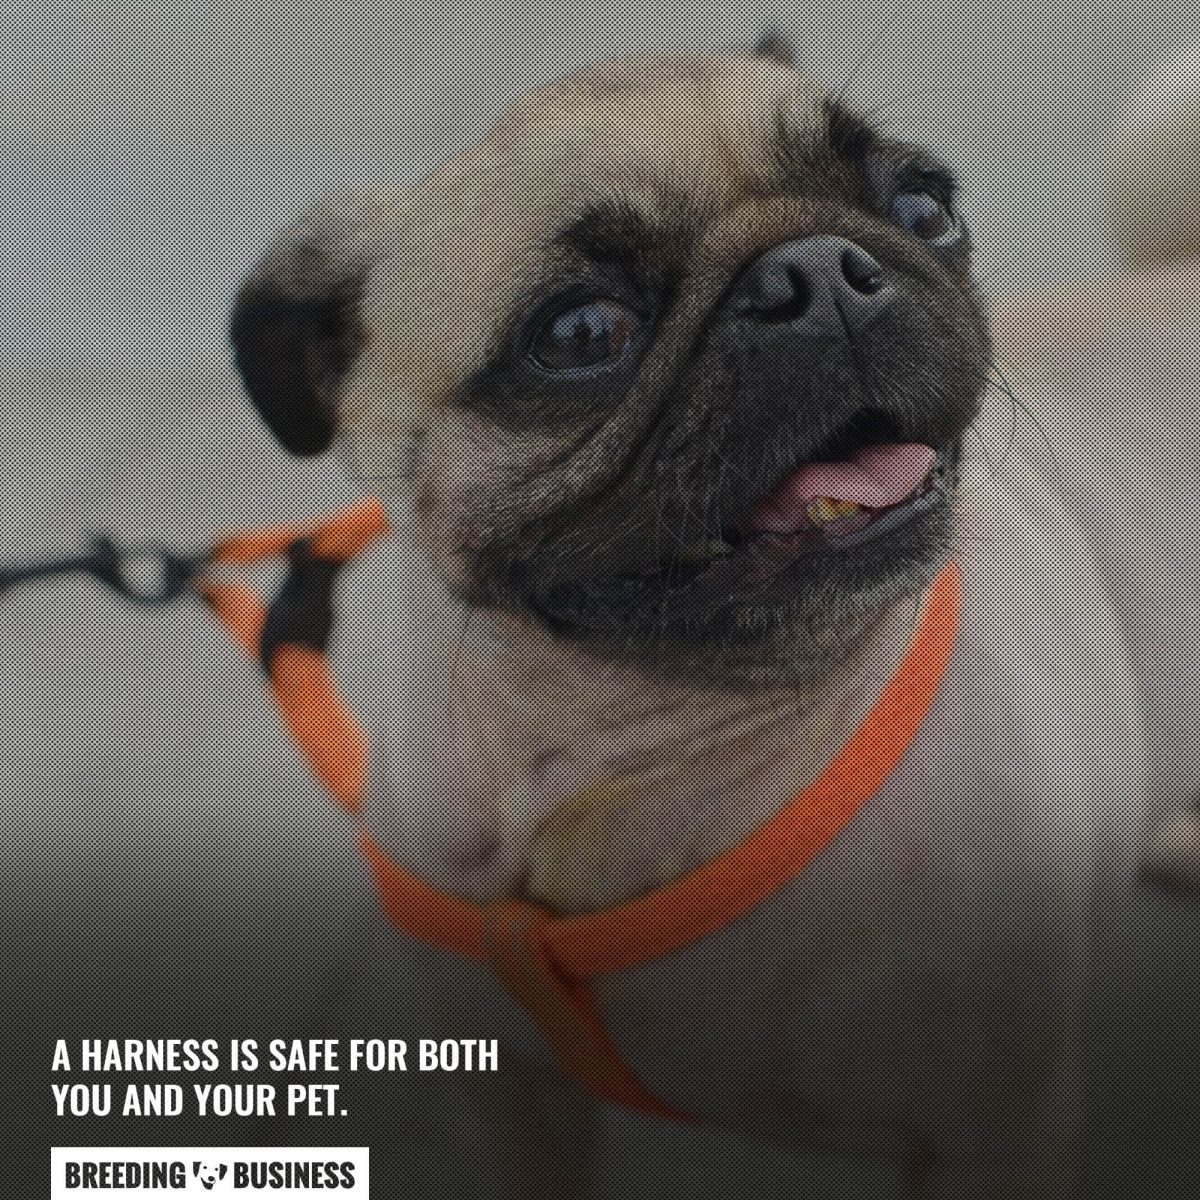 harness safety for you and your dog